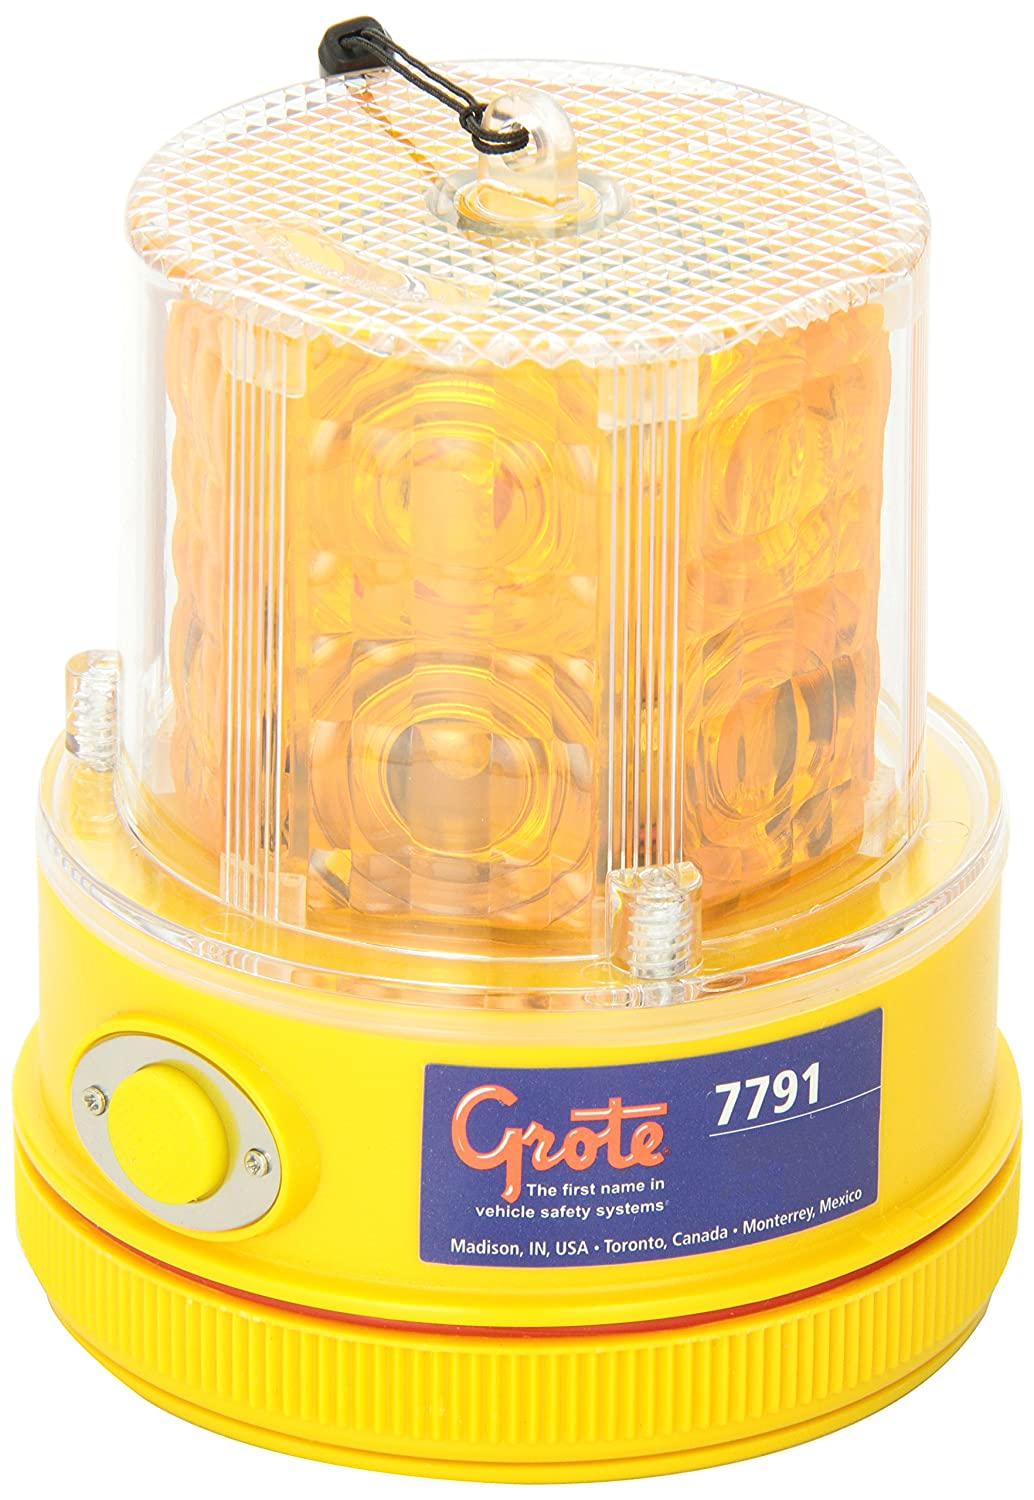 Grote 77913 360° Portable Battery Operated LED Warning Light